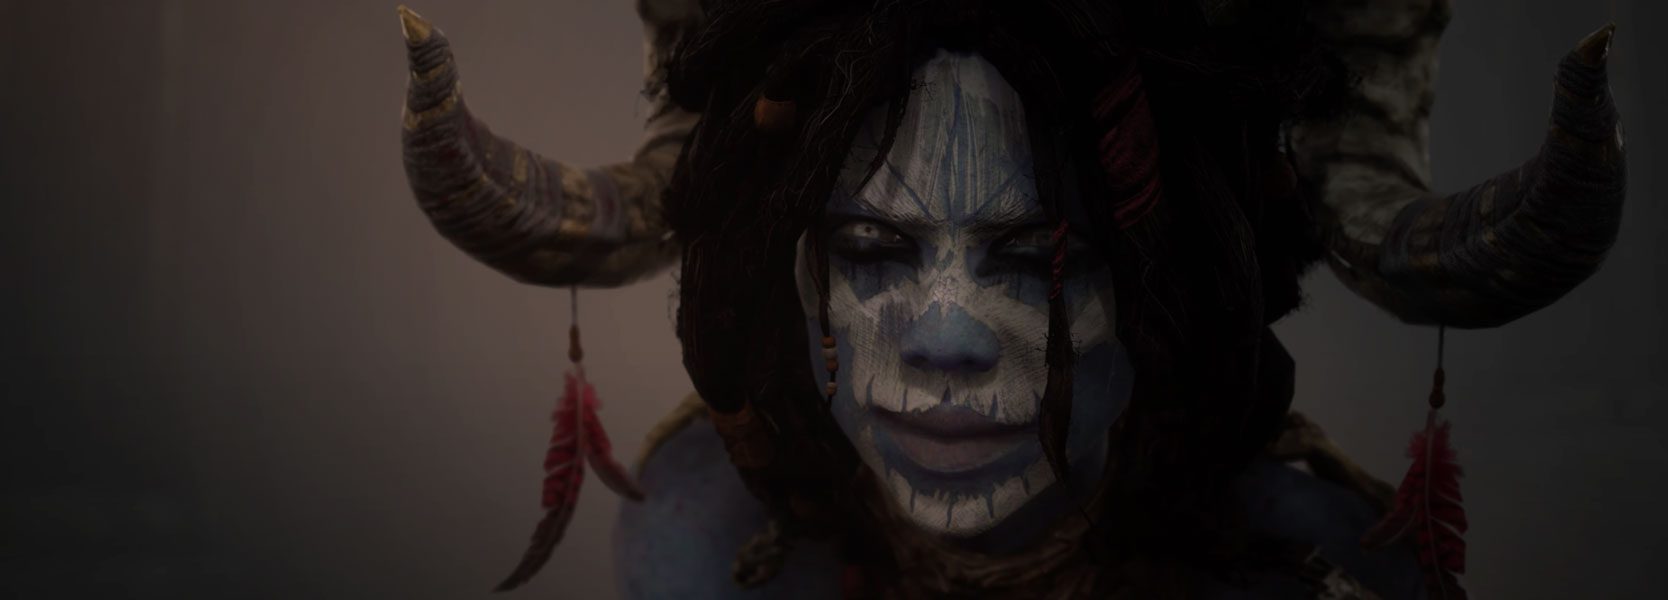 Morigesh Video Still from trailer